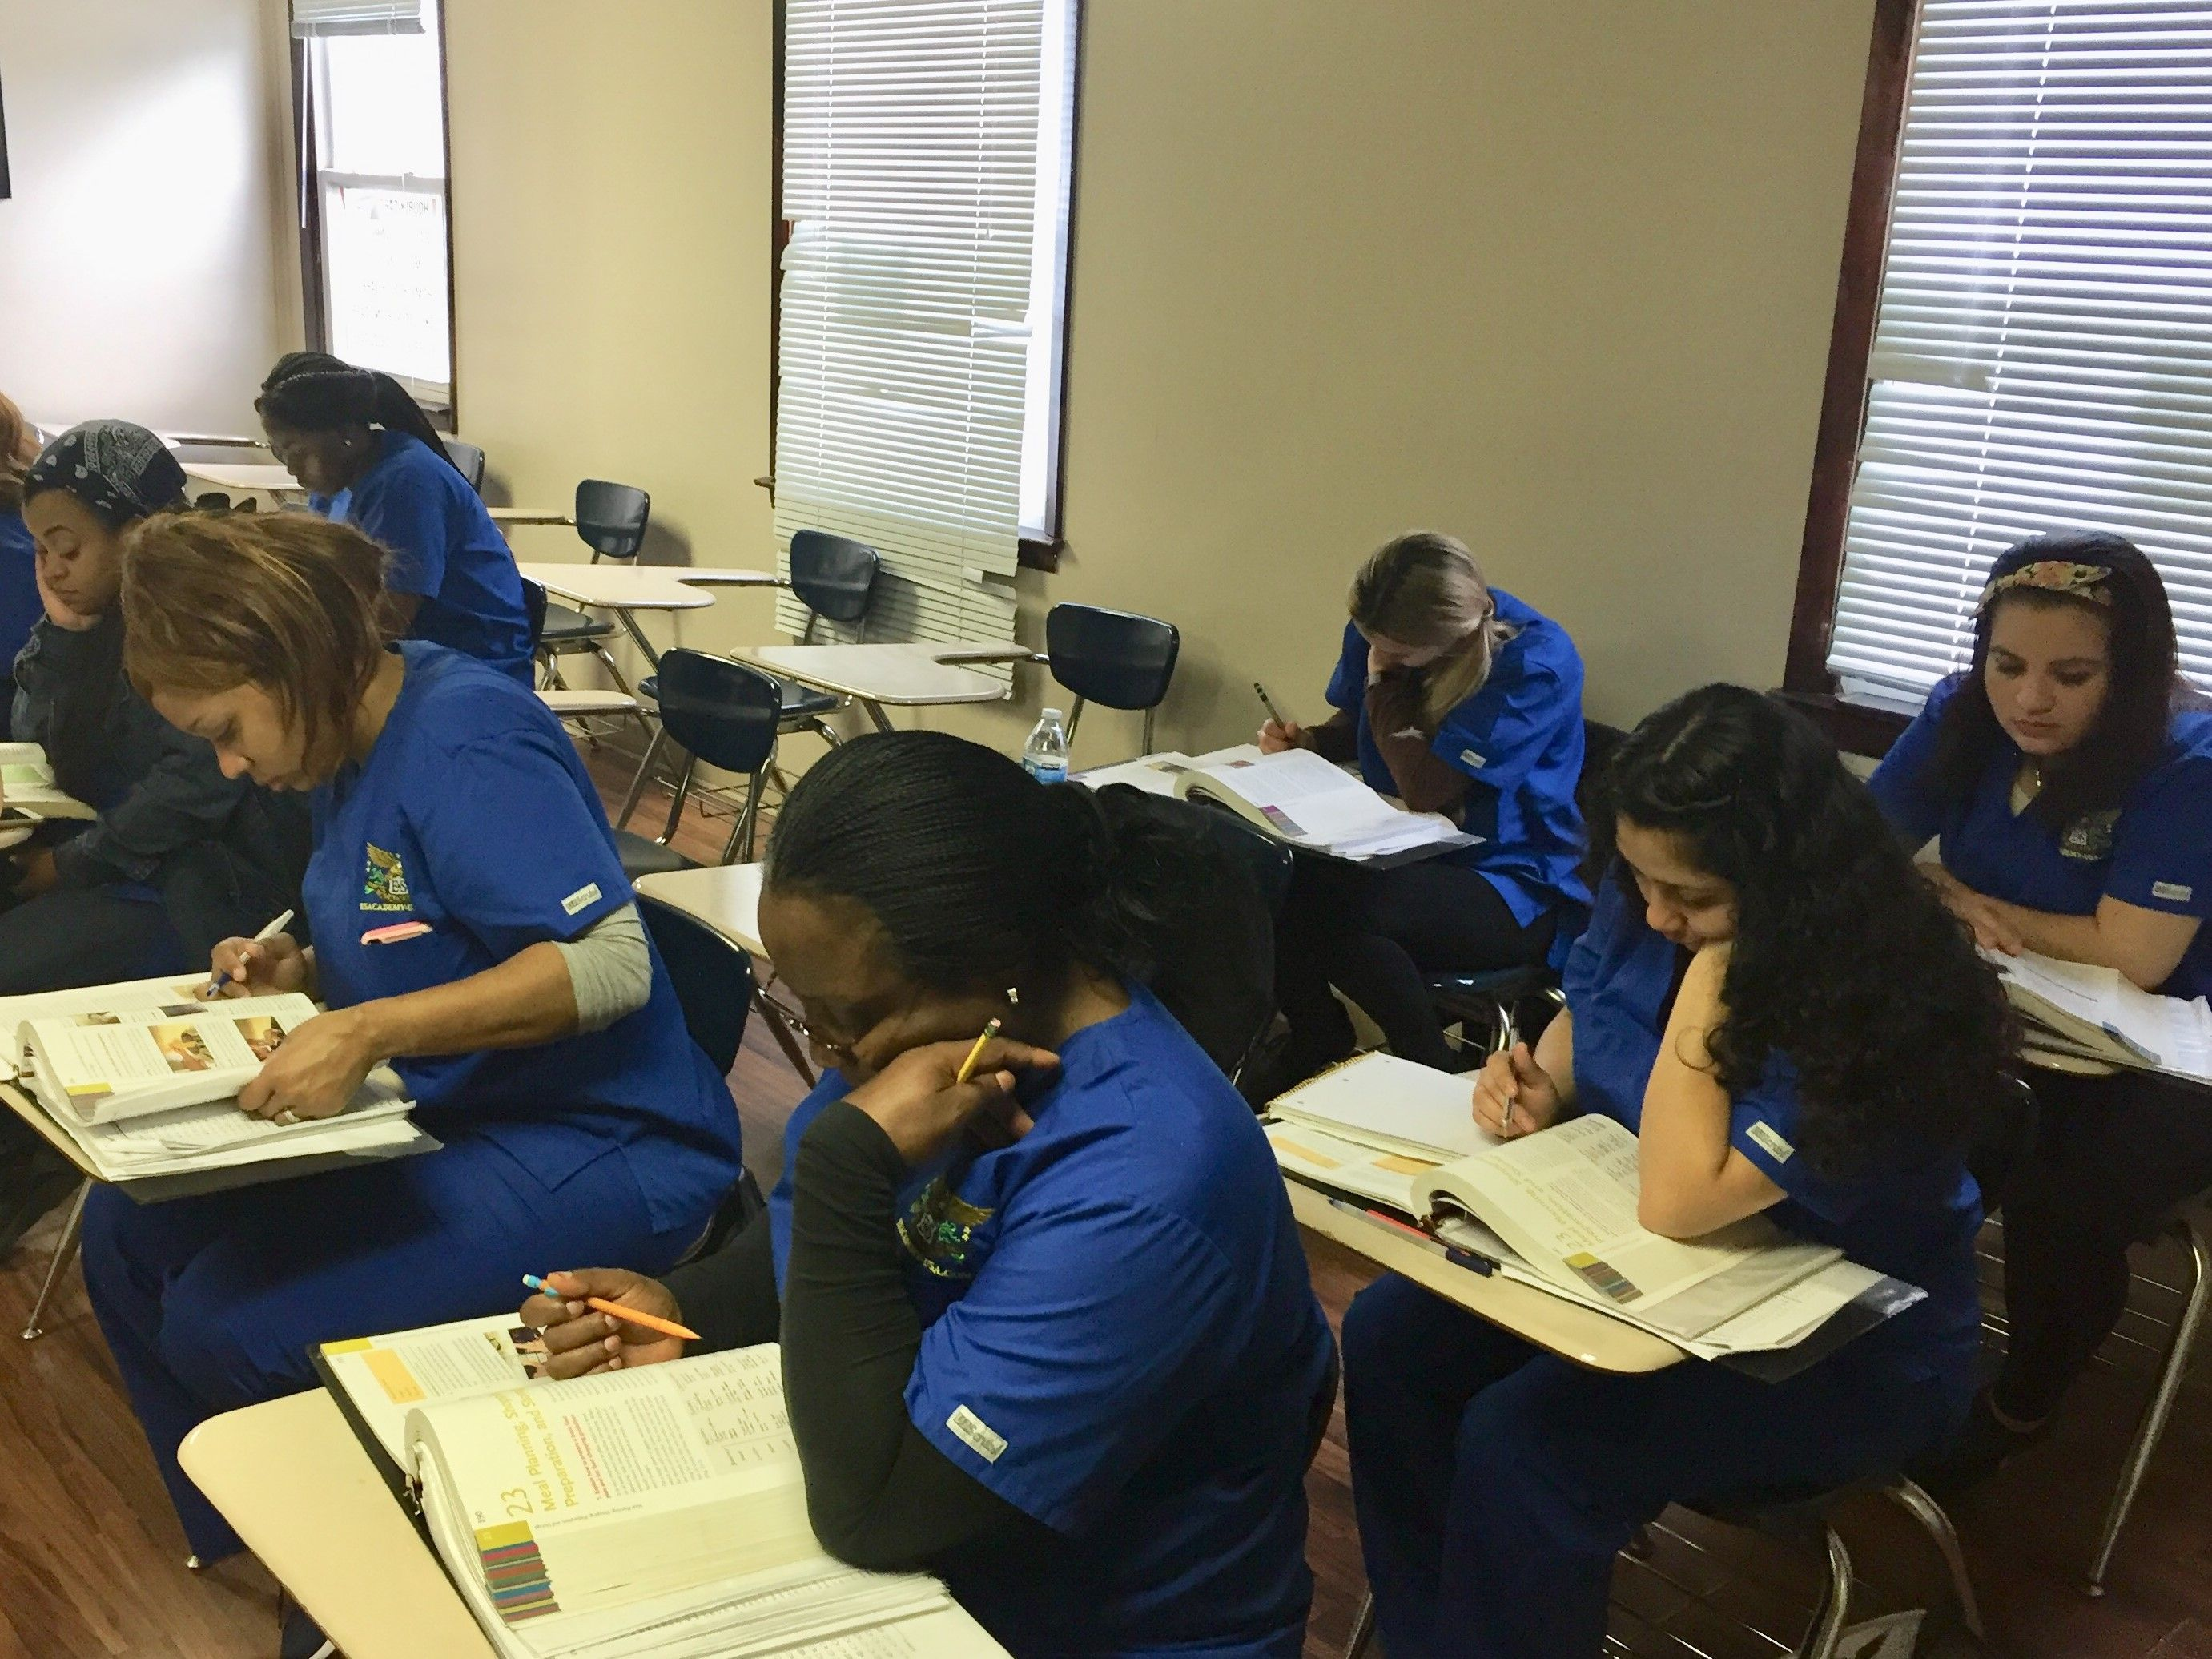 Home Health Aide Students Acting Studious In The Classroom Hha